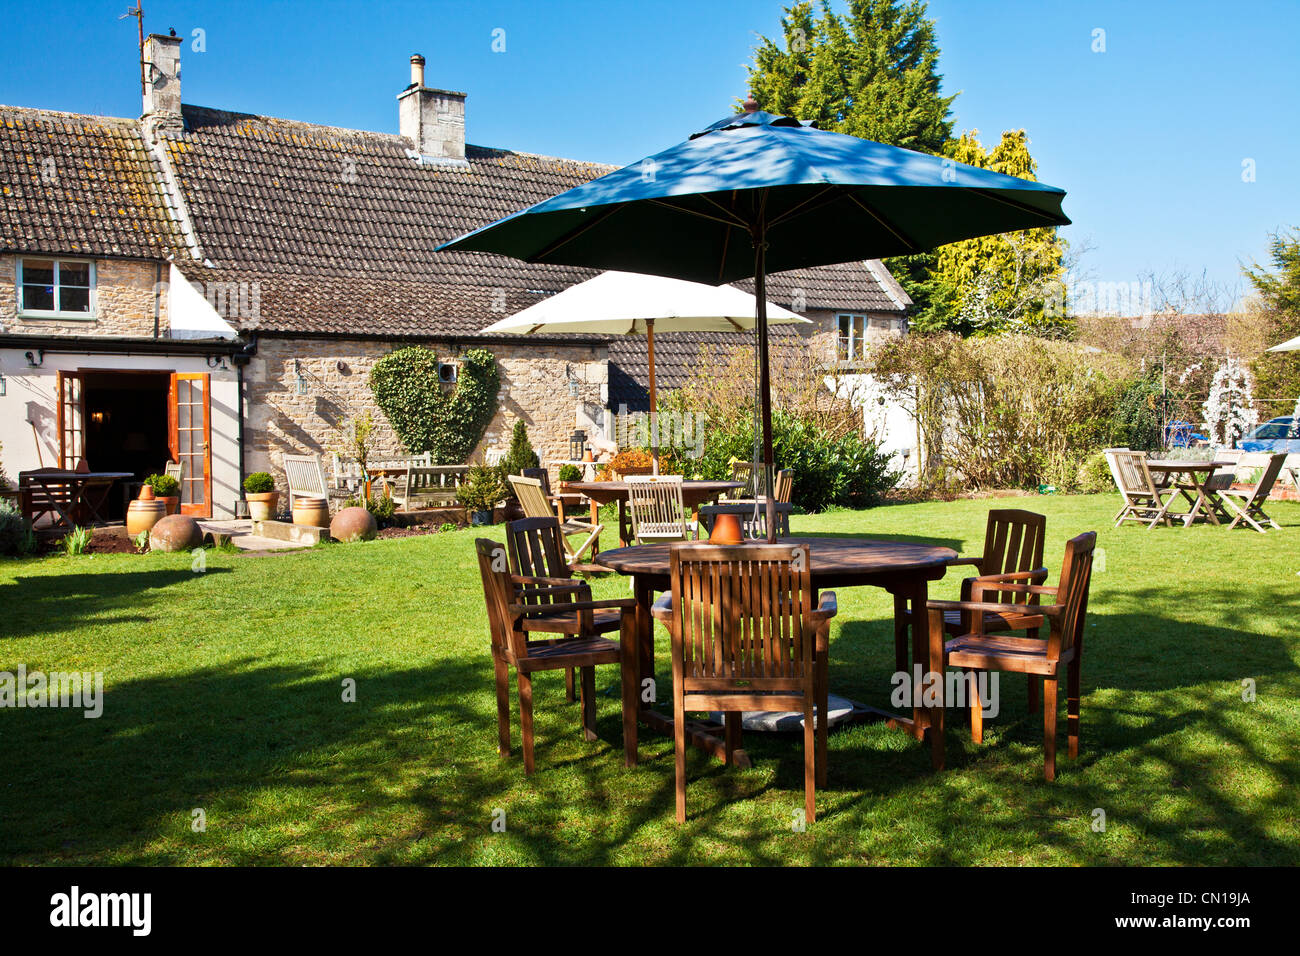 Pub garden of a typical English country village pub or inn in Wiltshire, England, UK - Stock Image